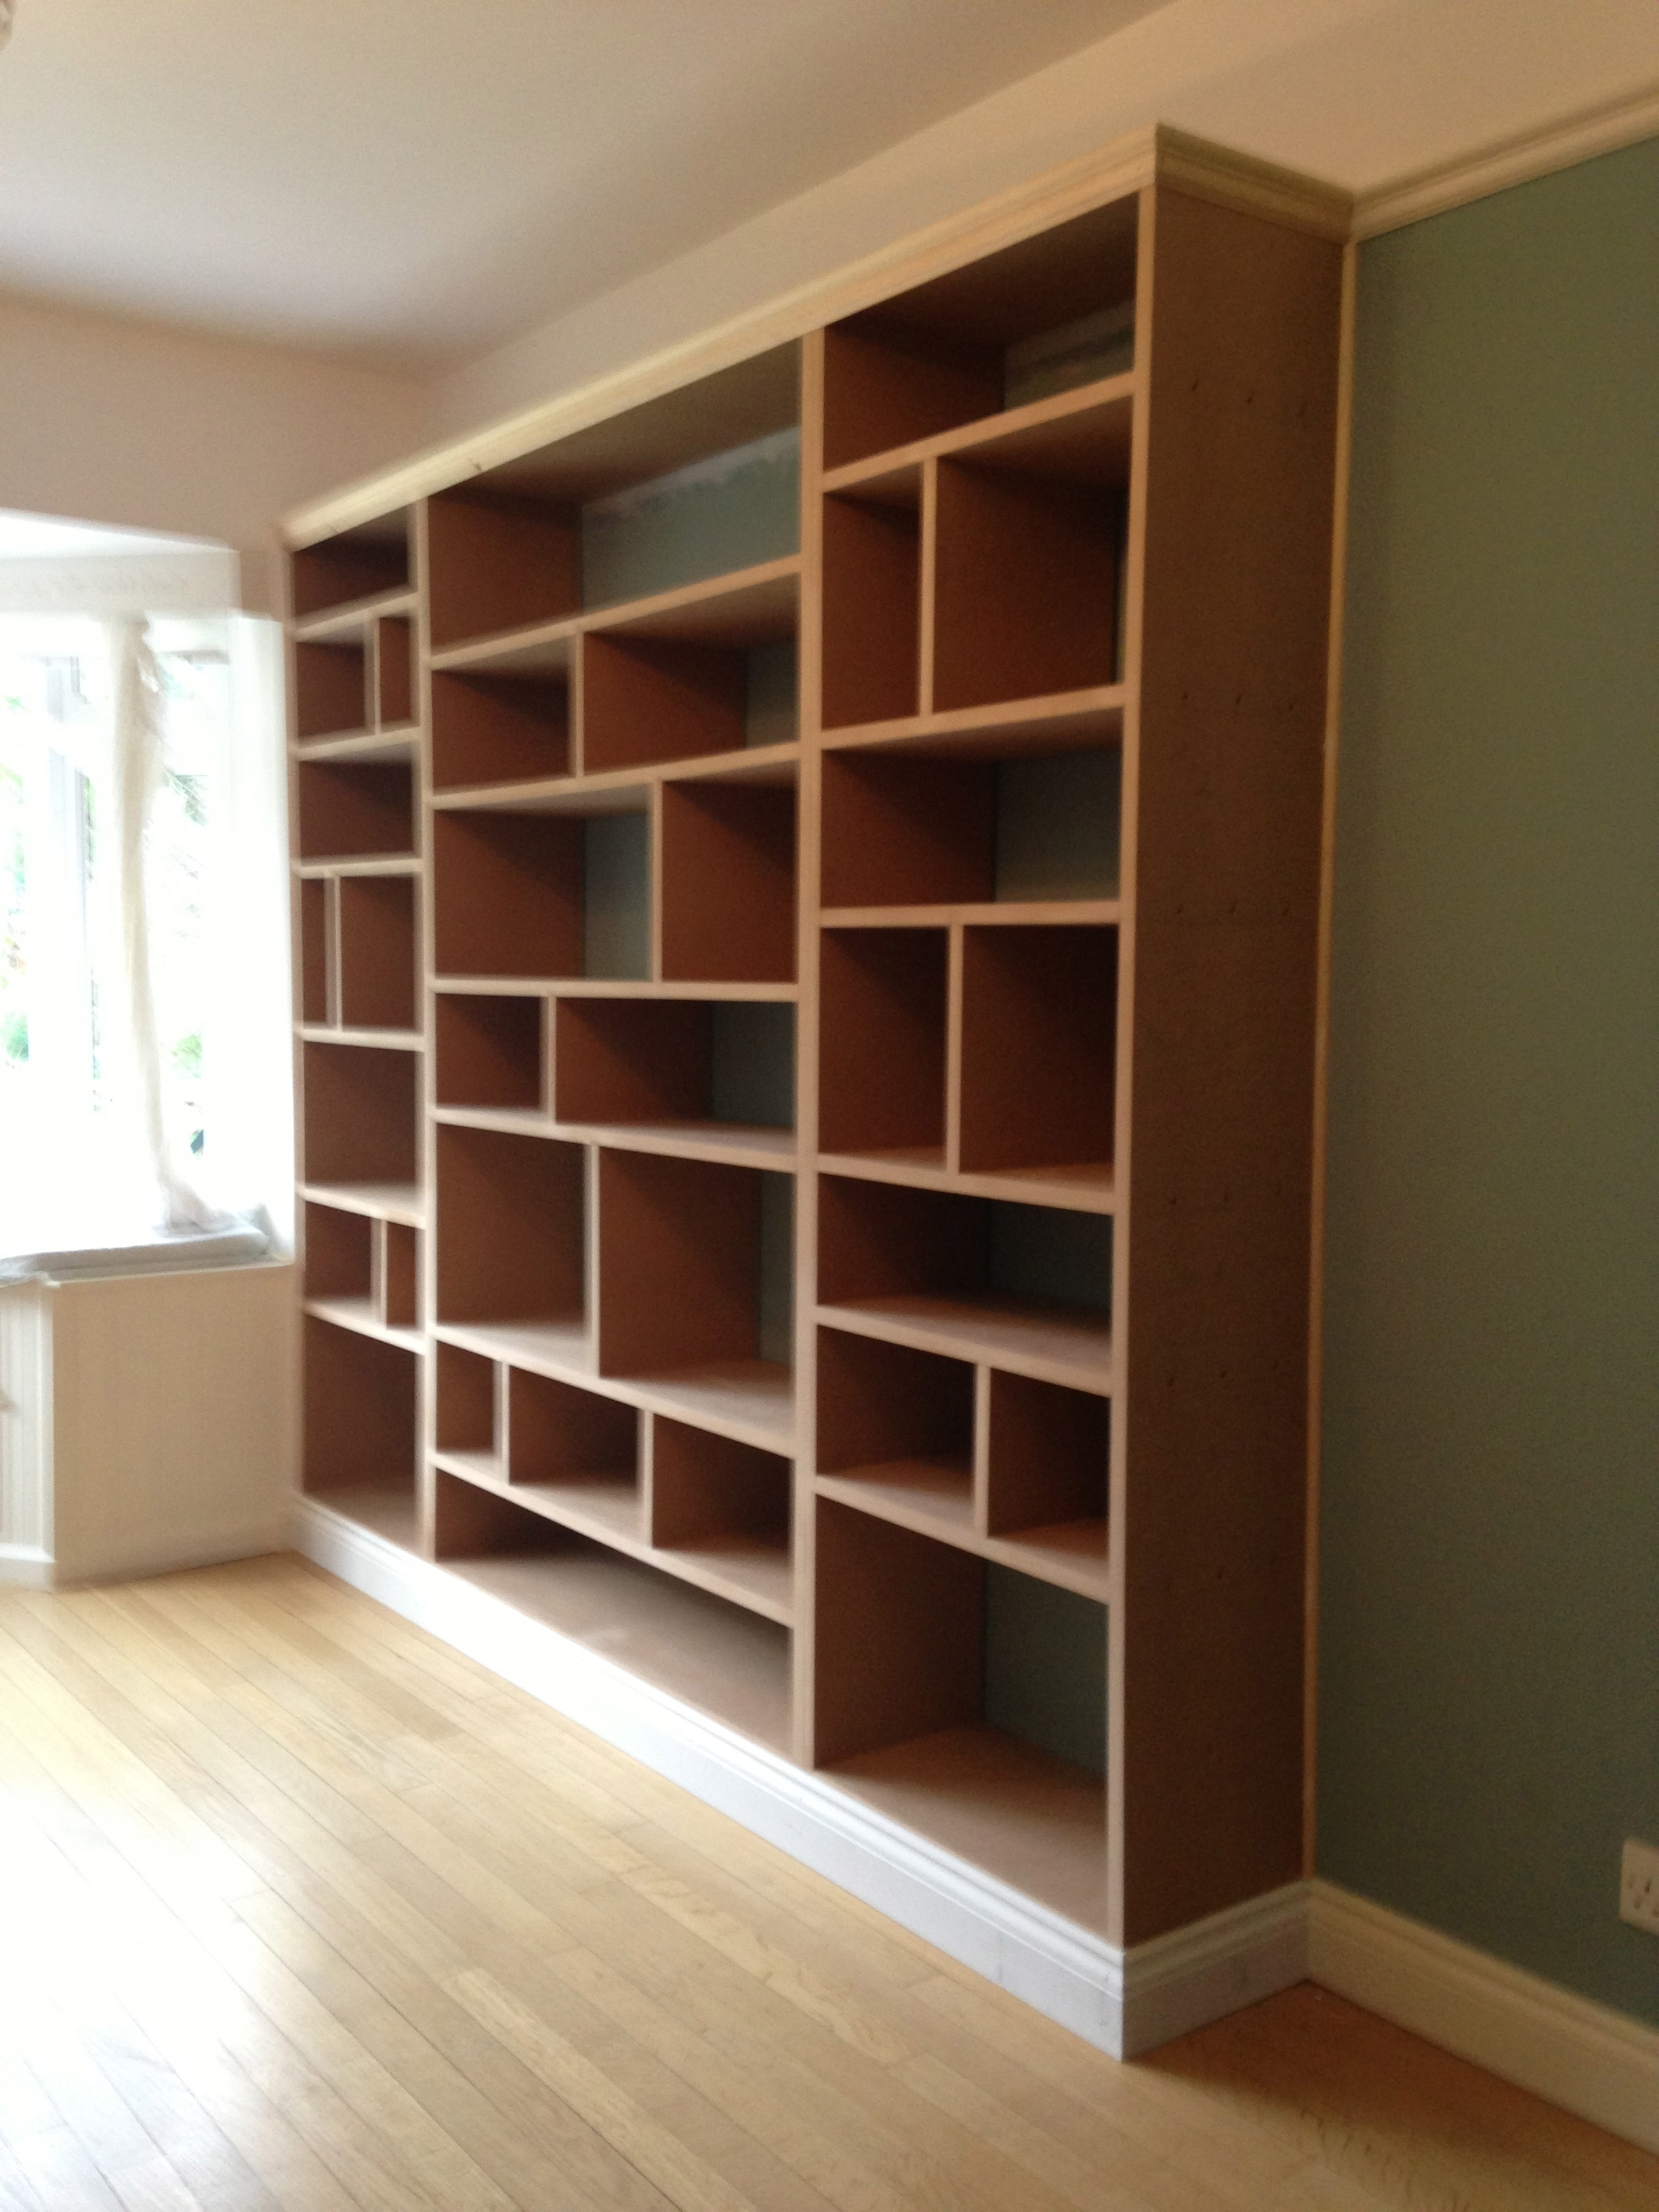 Fitted Shelving Units Regarding Current Fitted Shelving, Cupboards And Flooring – P D Carpentry & Building (View 8 of 15)